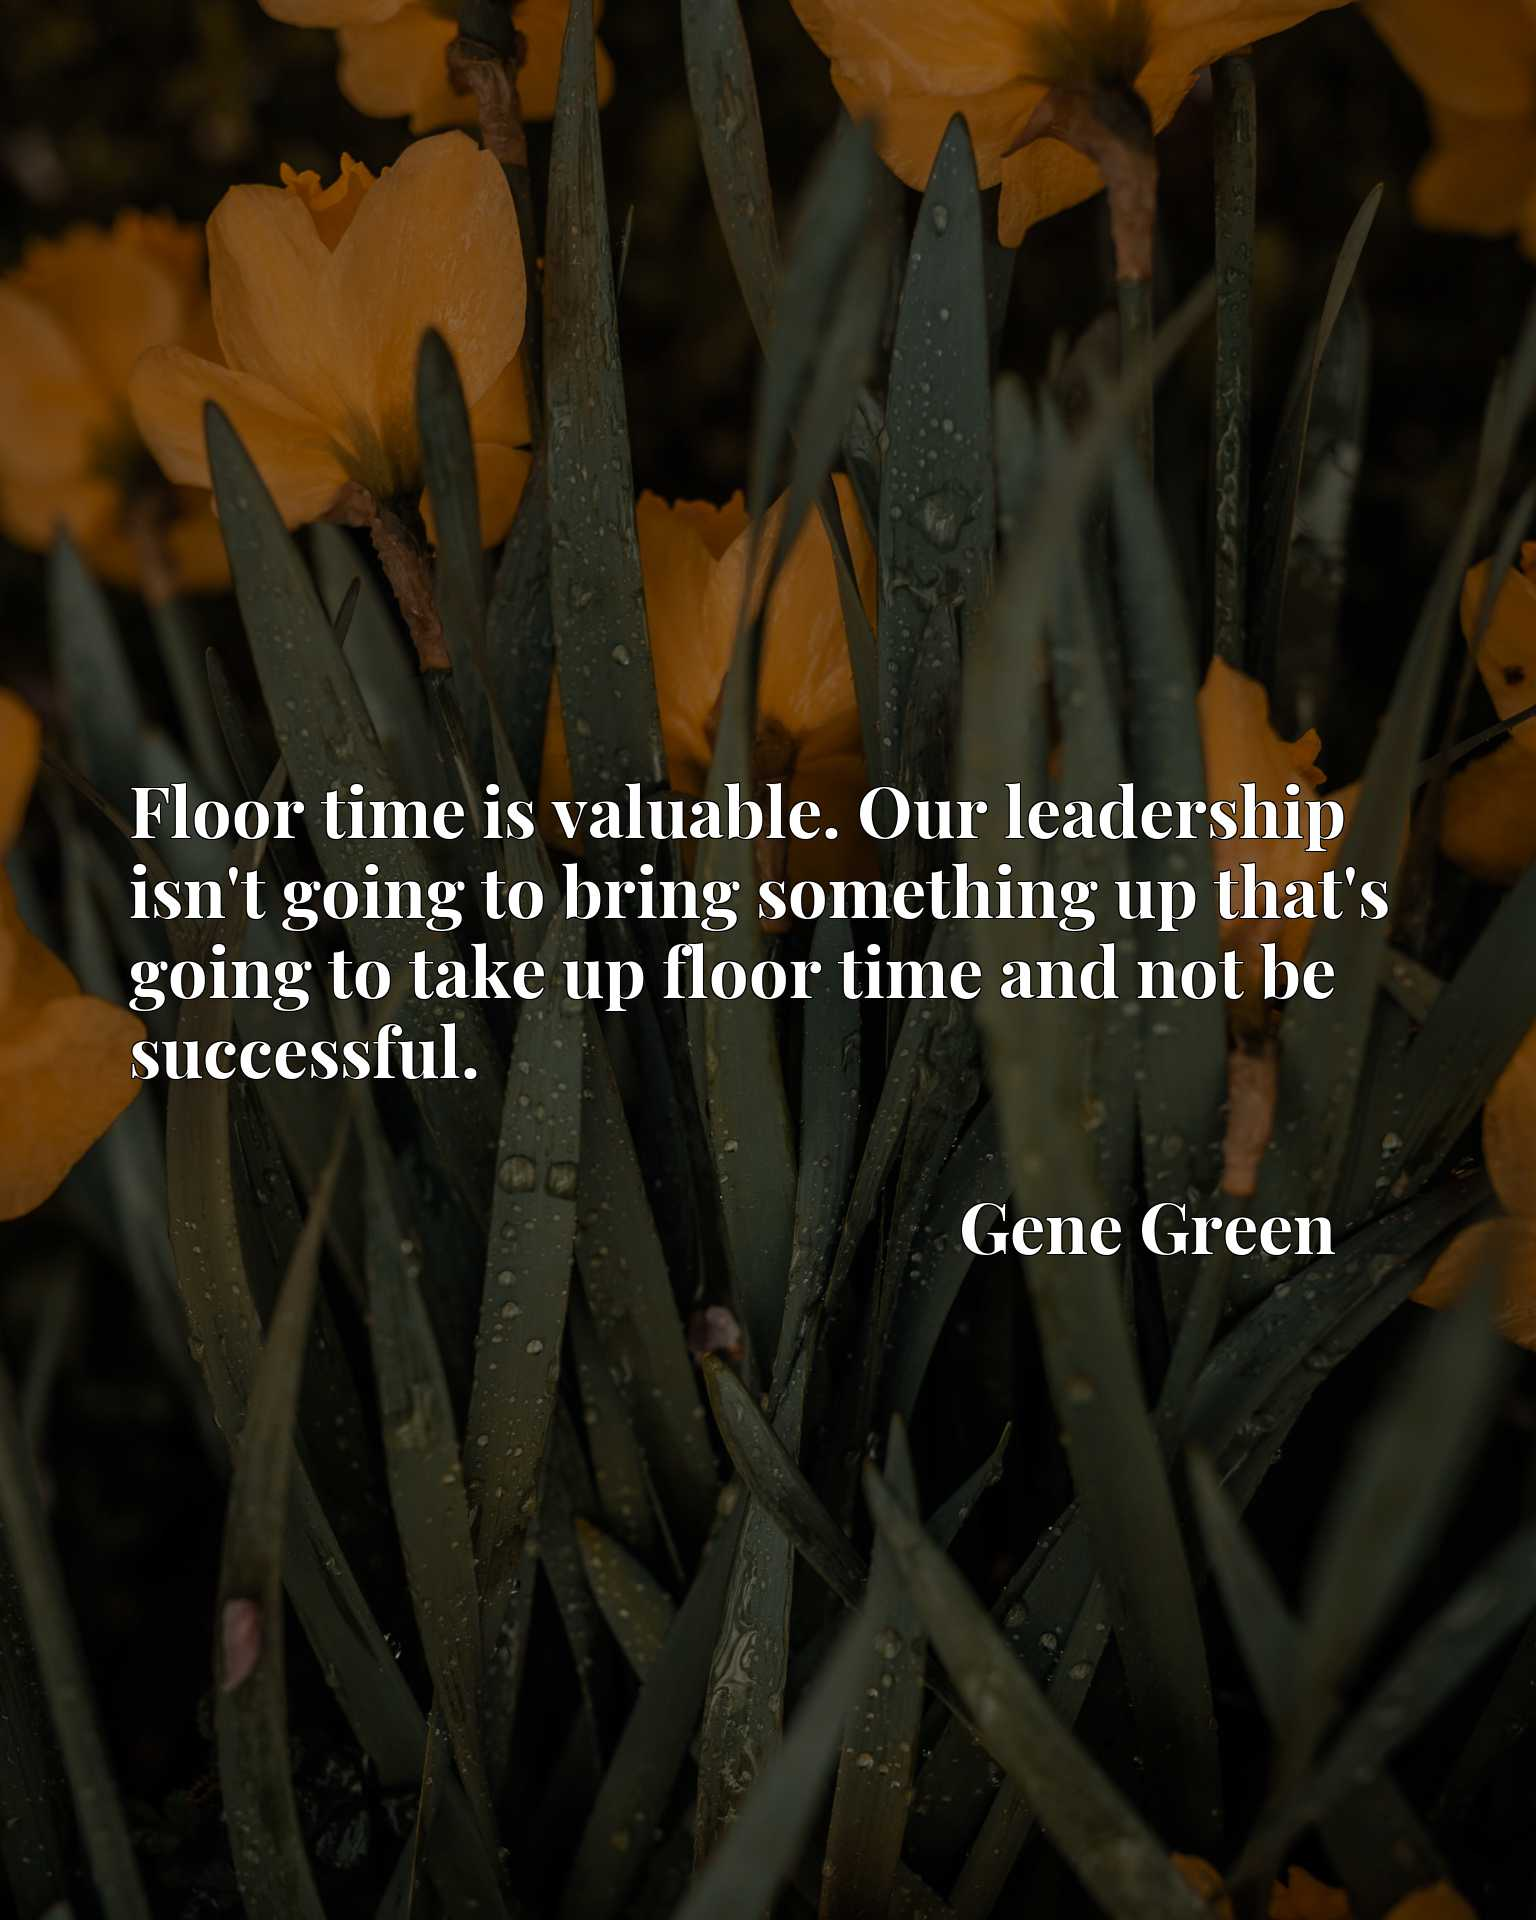 Floor time is valuable. Our leadership isn't going to bring something up that's going to take up floor time and not be successful.